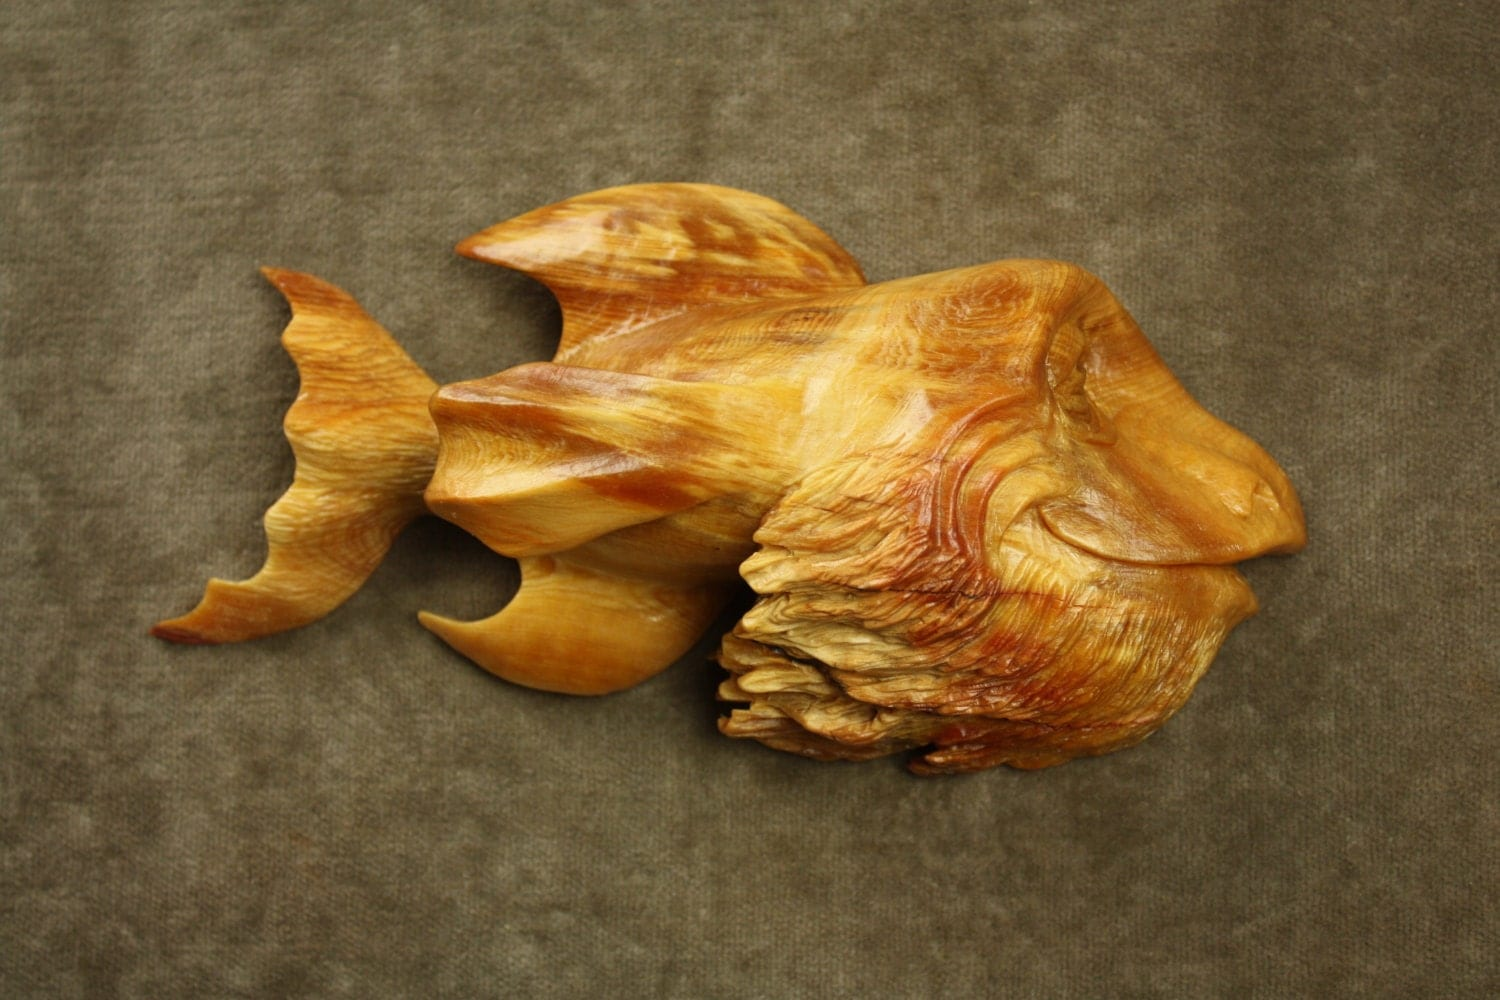 Carved wood fish wood carving gift for fisherman a whimsical for Fish wood carving